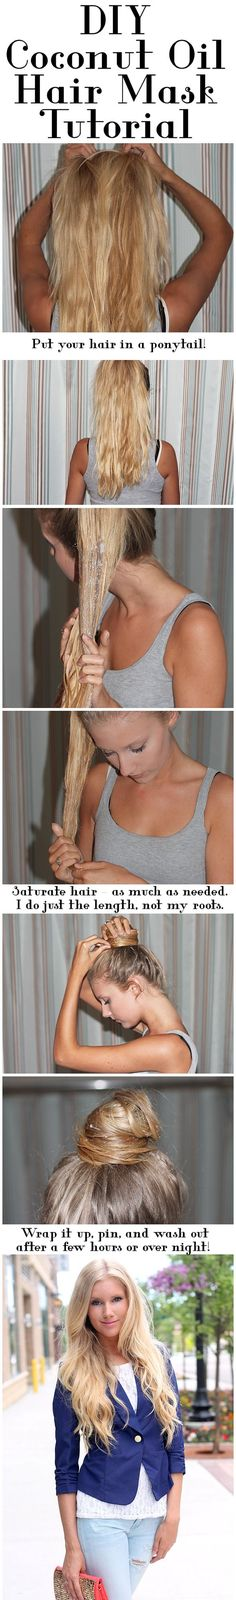 DIY Coconut Oil Hair Mask - Using coconut oil on hair will produce luxurious locks that'll be the envy of everyone around you! It's cheap, easy, and beats any restorative hair mask from the drug store.